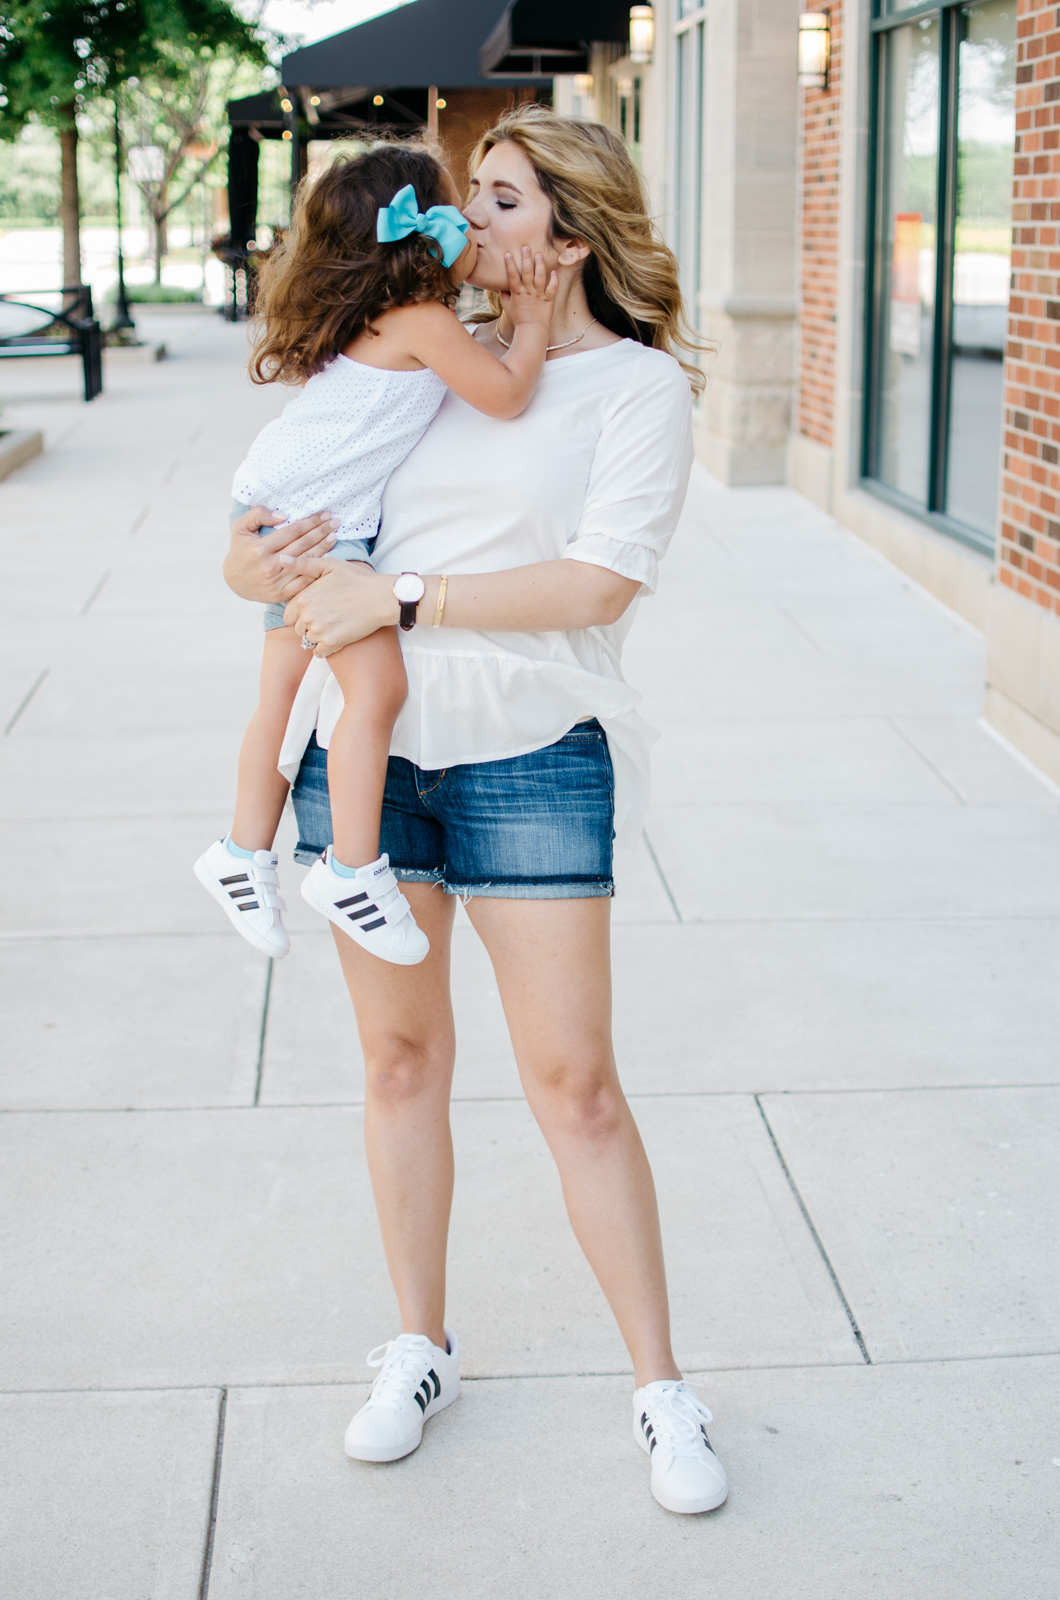 mommy daughter outfits - summer adidas sneakers outfits | For more mother-daughter outfit ideas, head to bylaurenm.com!